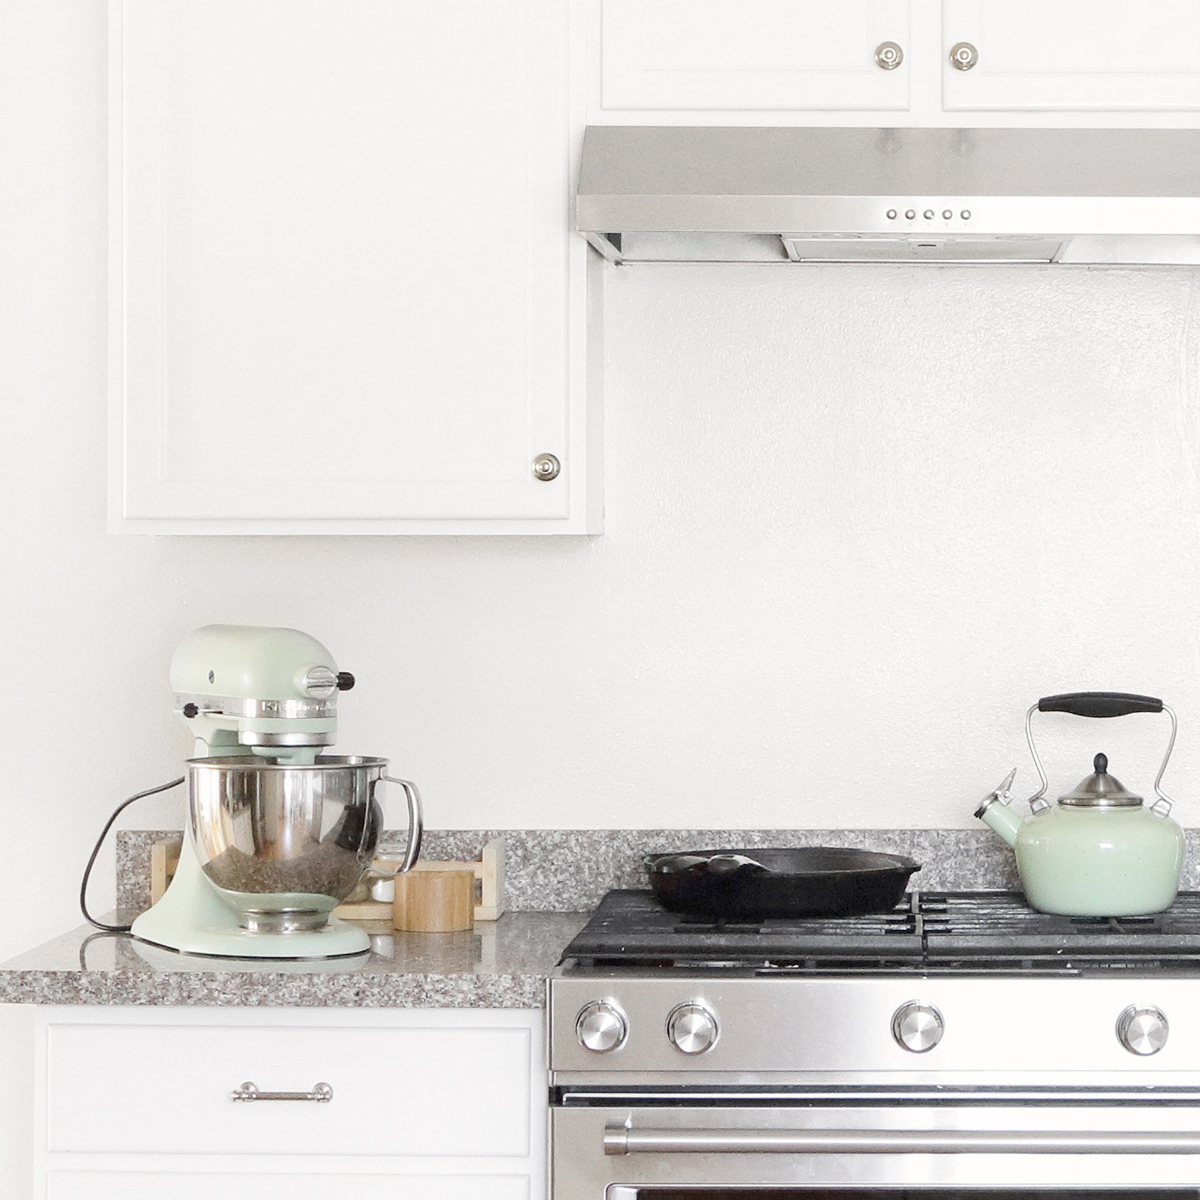 How To Paint Your Kitchen Cabinets: Abbreviated | BAY ON A ...